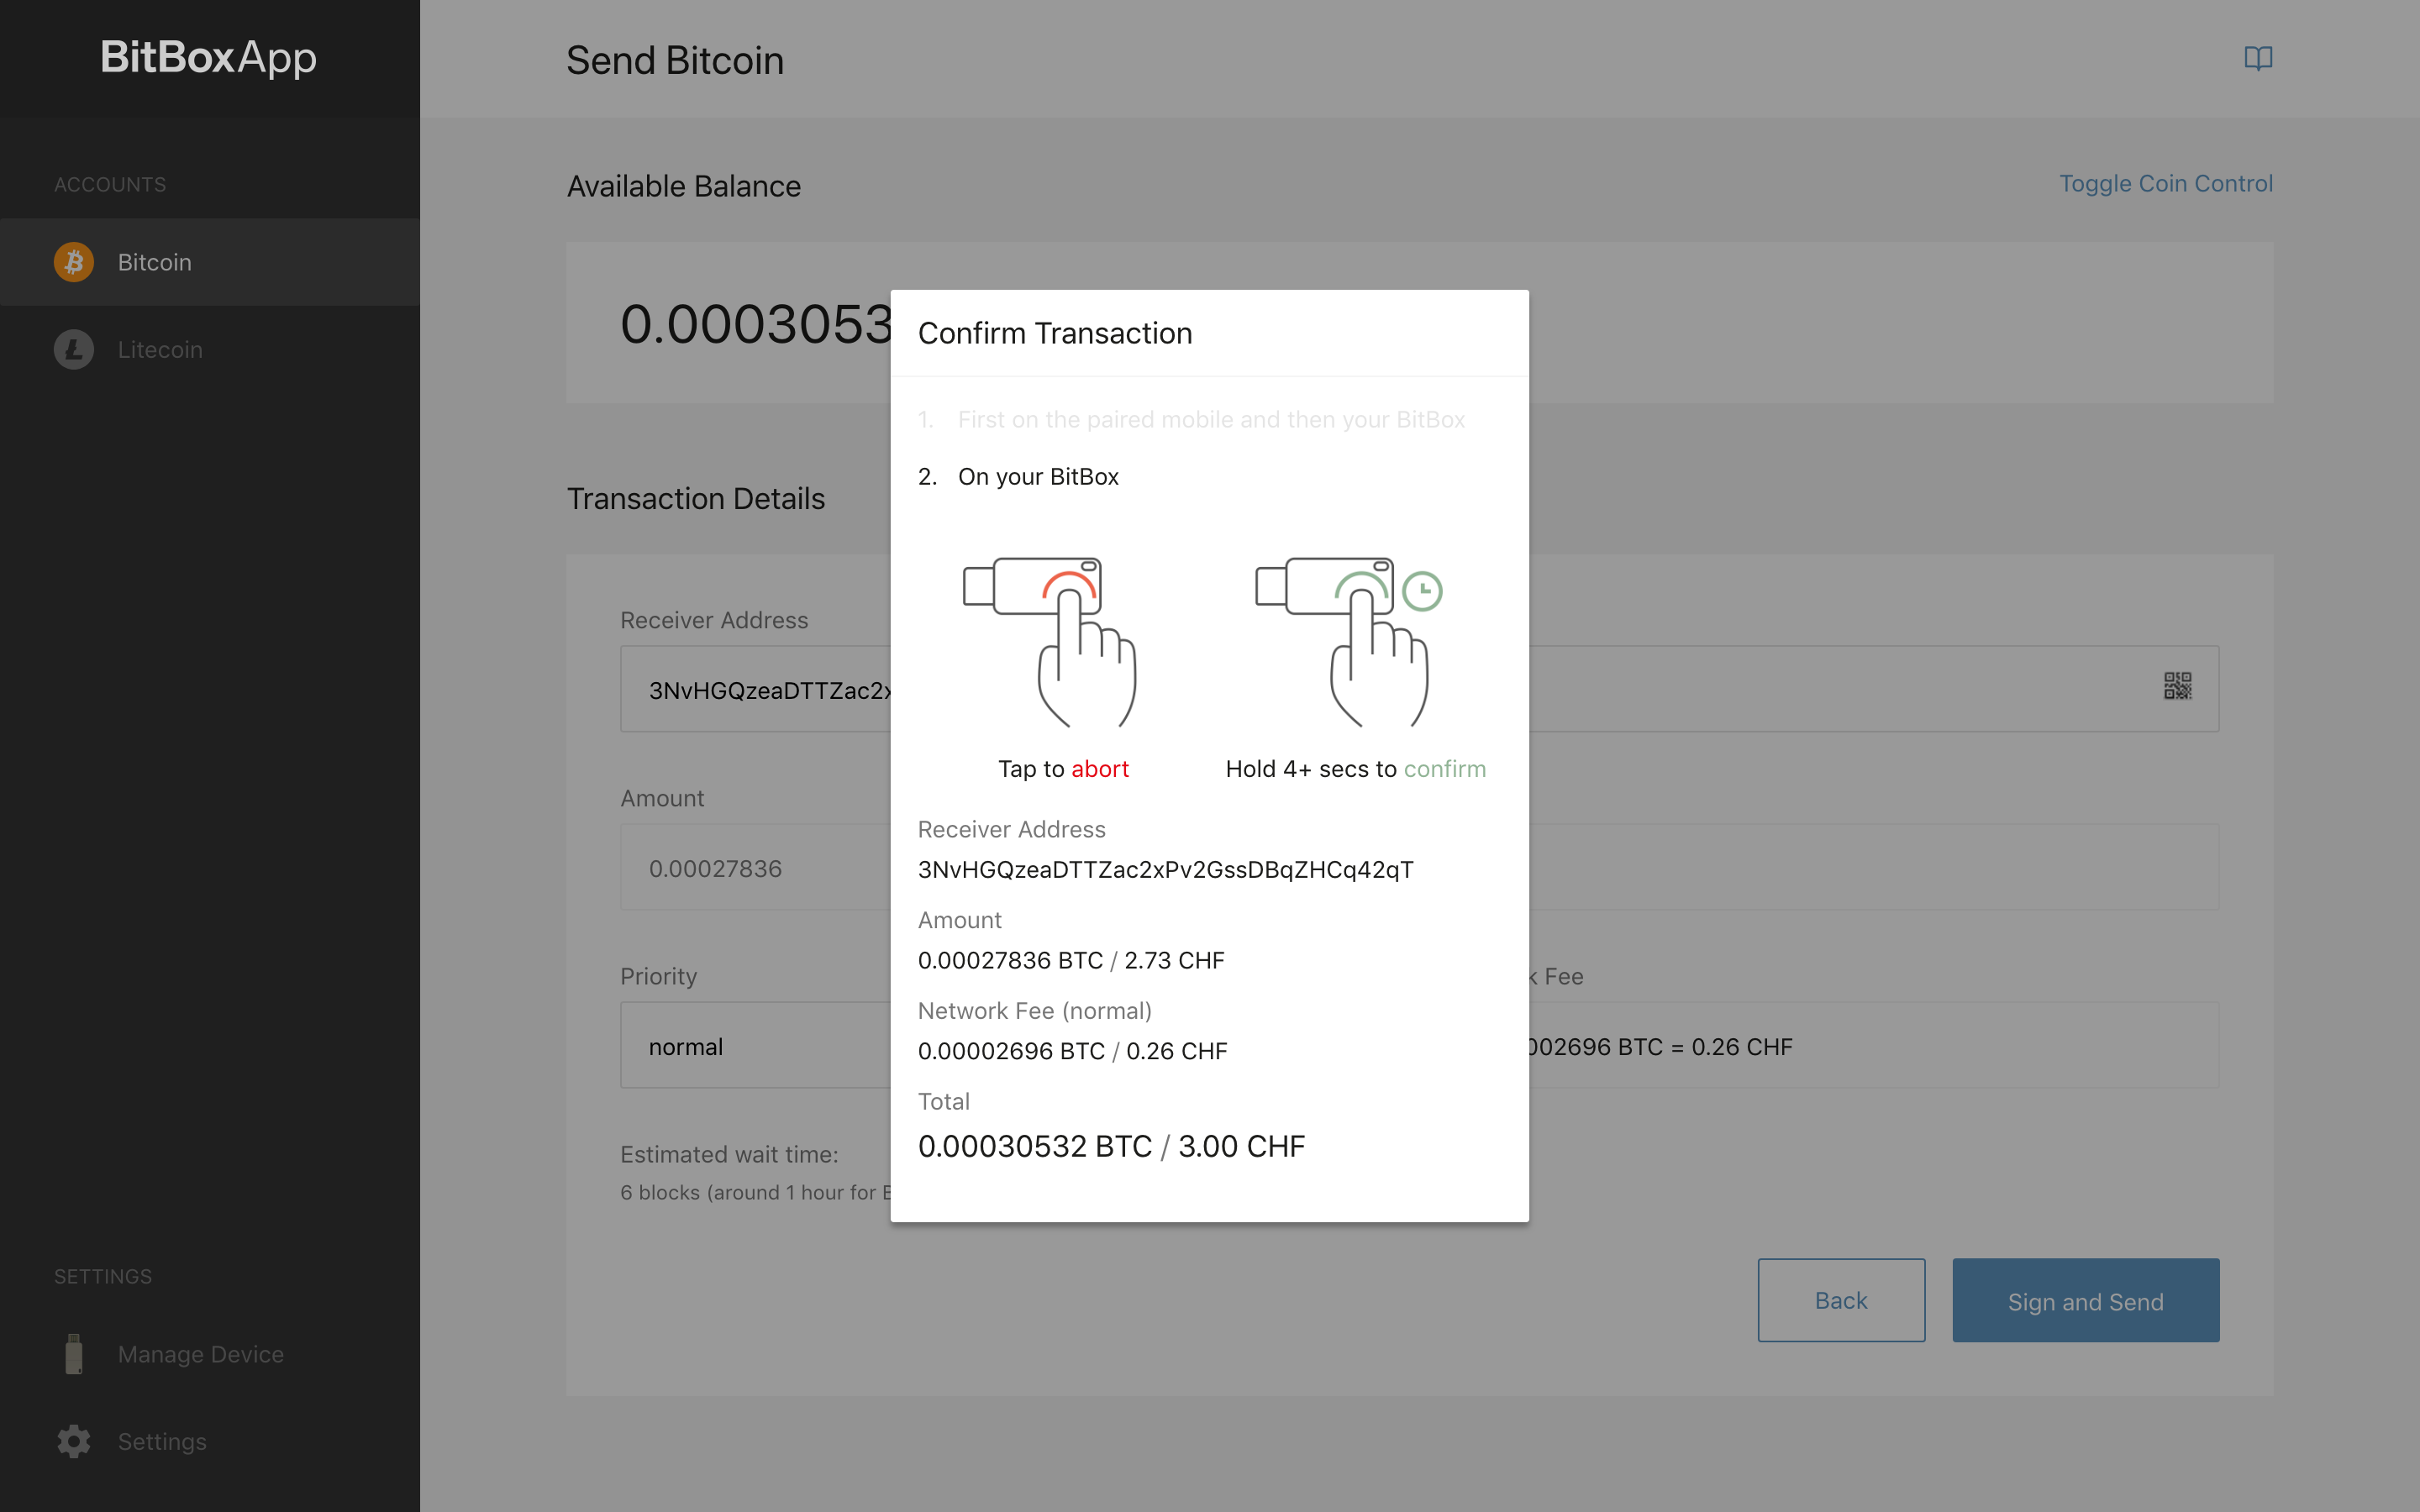 Confirm transaction on BitBox01